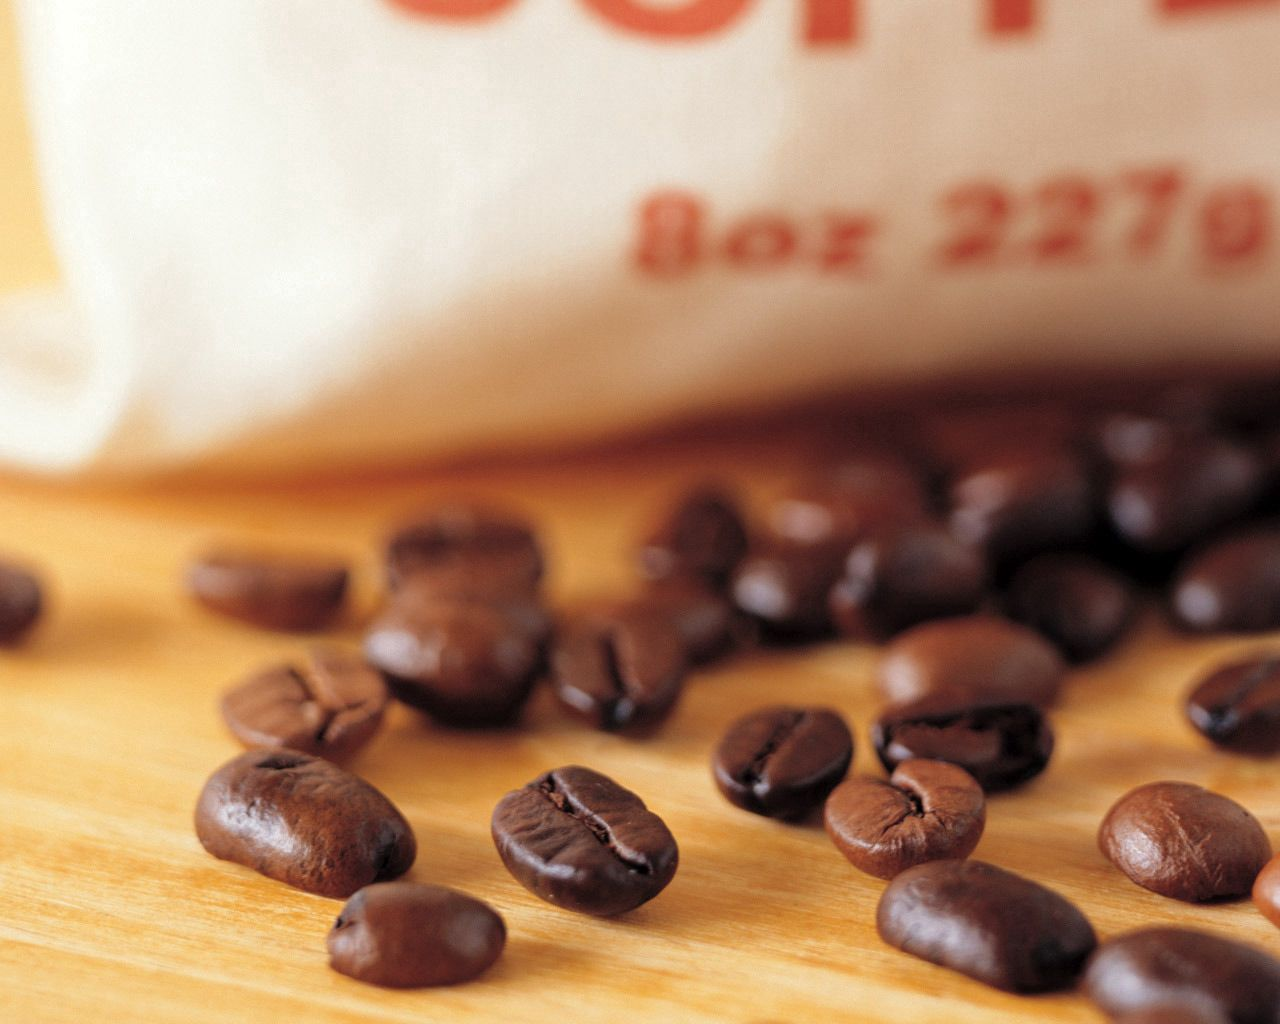 148837 download wallpaper Food, Coffee, Grains, Grain, Table, Package, Packet screensavers and pictures for free